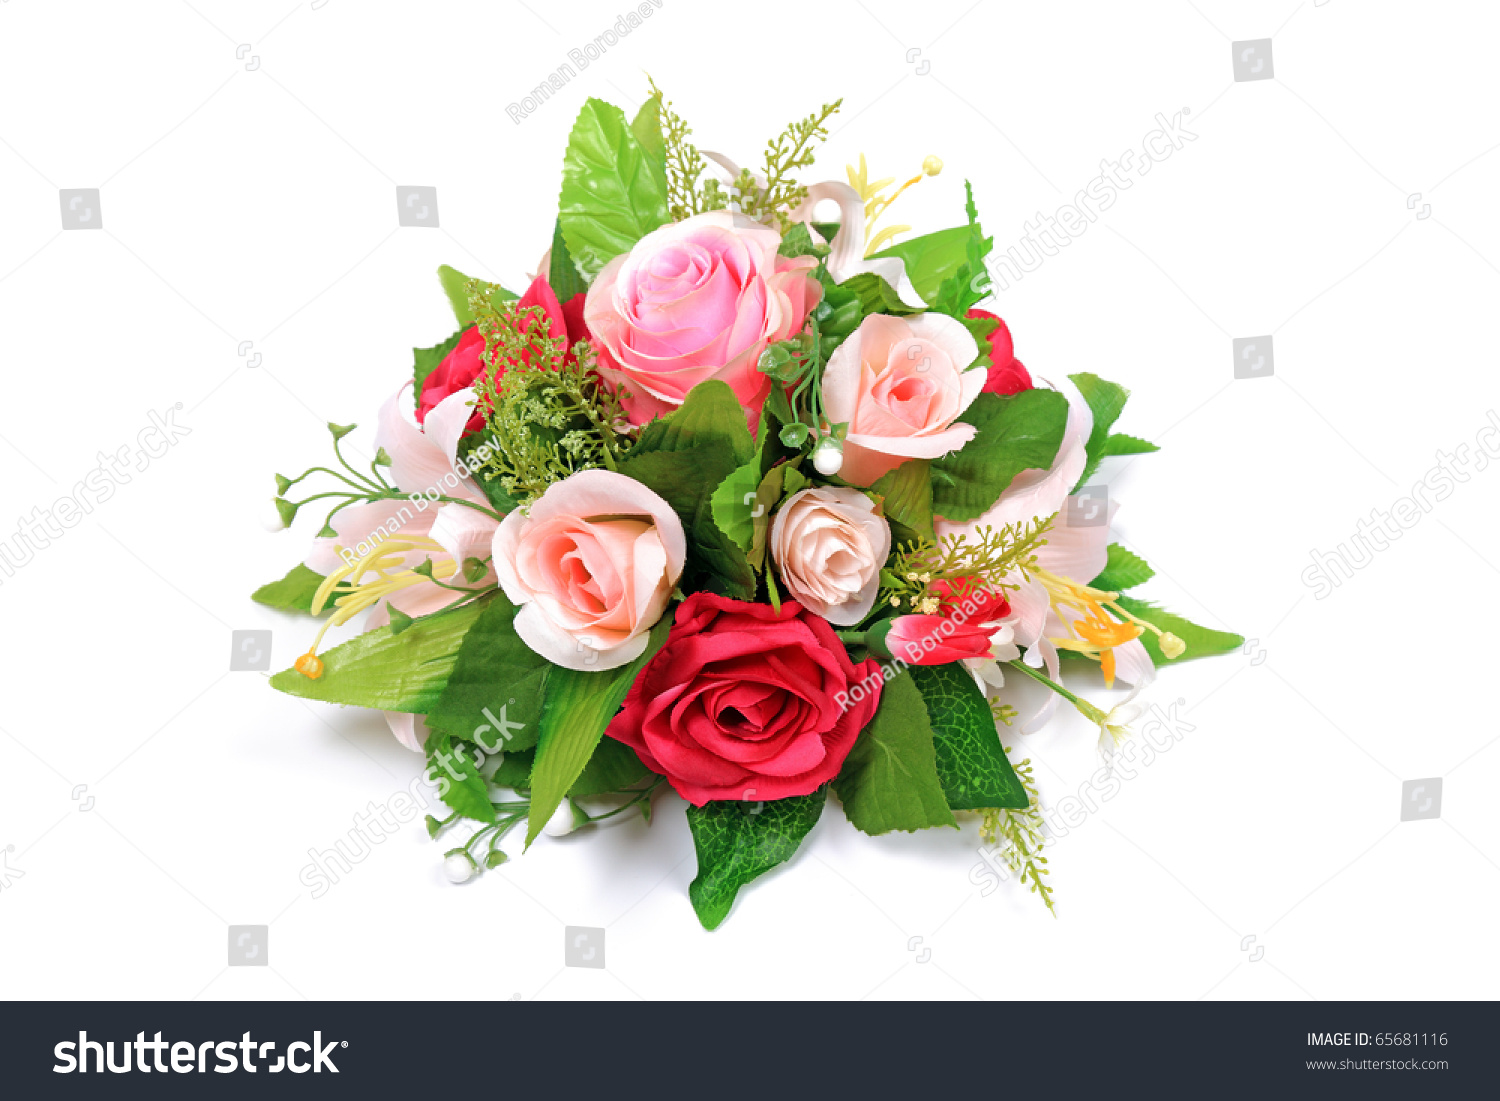 Wedding flower bouquet arrangement made by stock photo edit now wedding flower bouquet arrangement made by florists of bunch of fresh roses and lilies isolated on izmirmasajfo